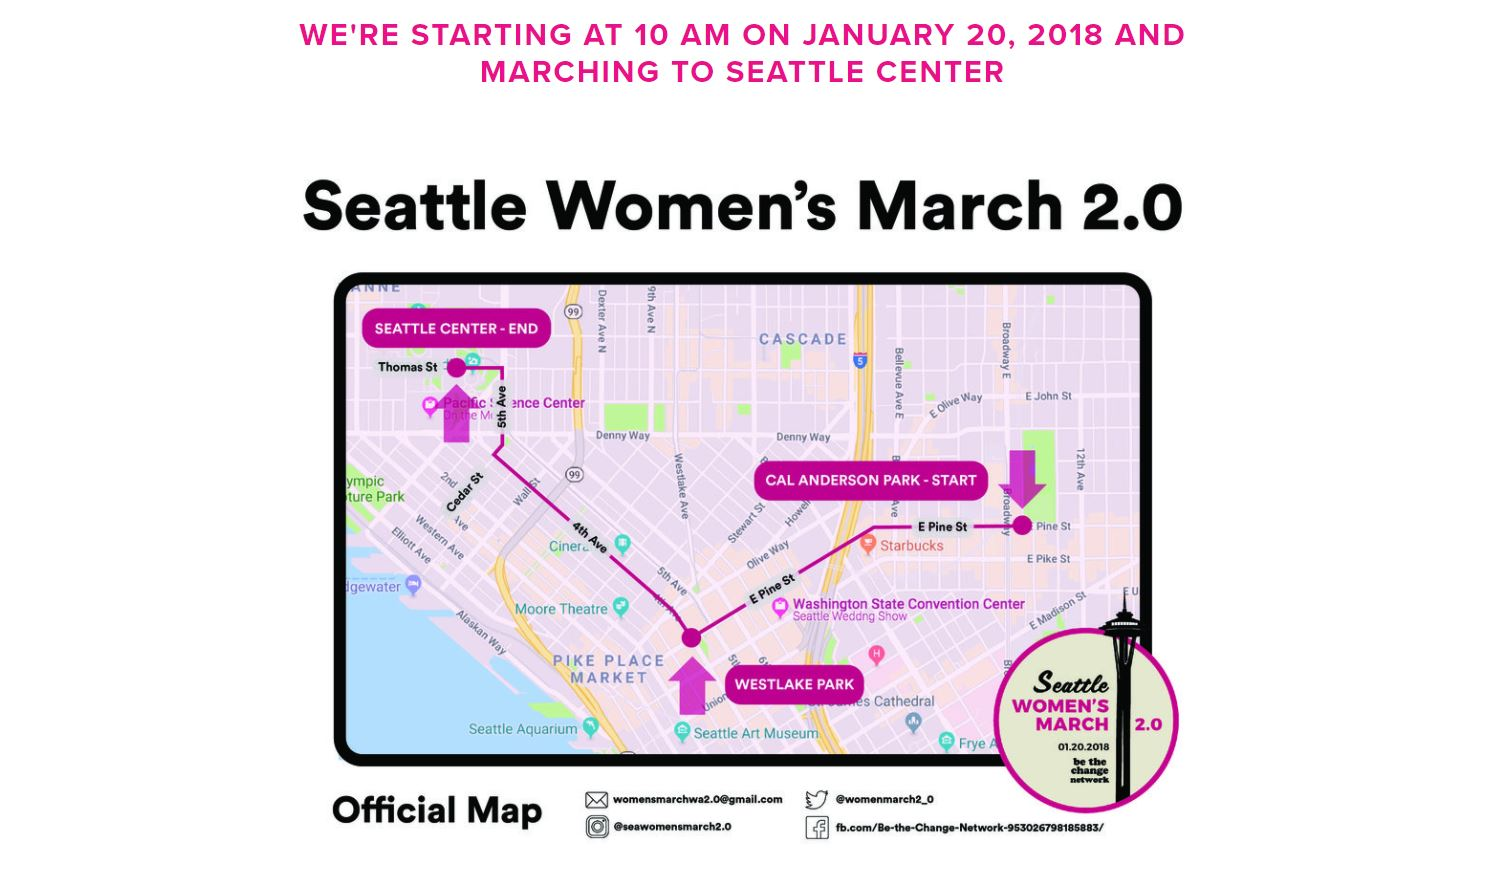 (Screen shot from https://seattlewomensmarch2018.com/march-information/)<p></p>